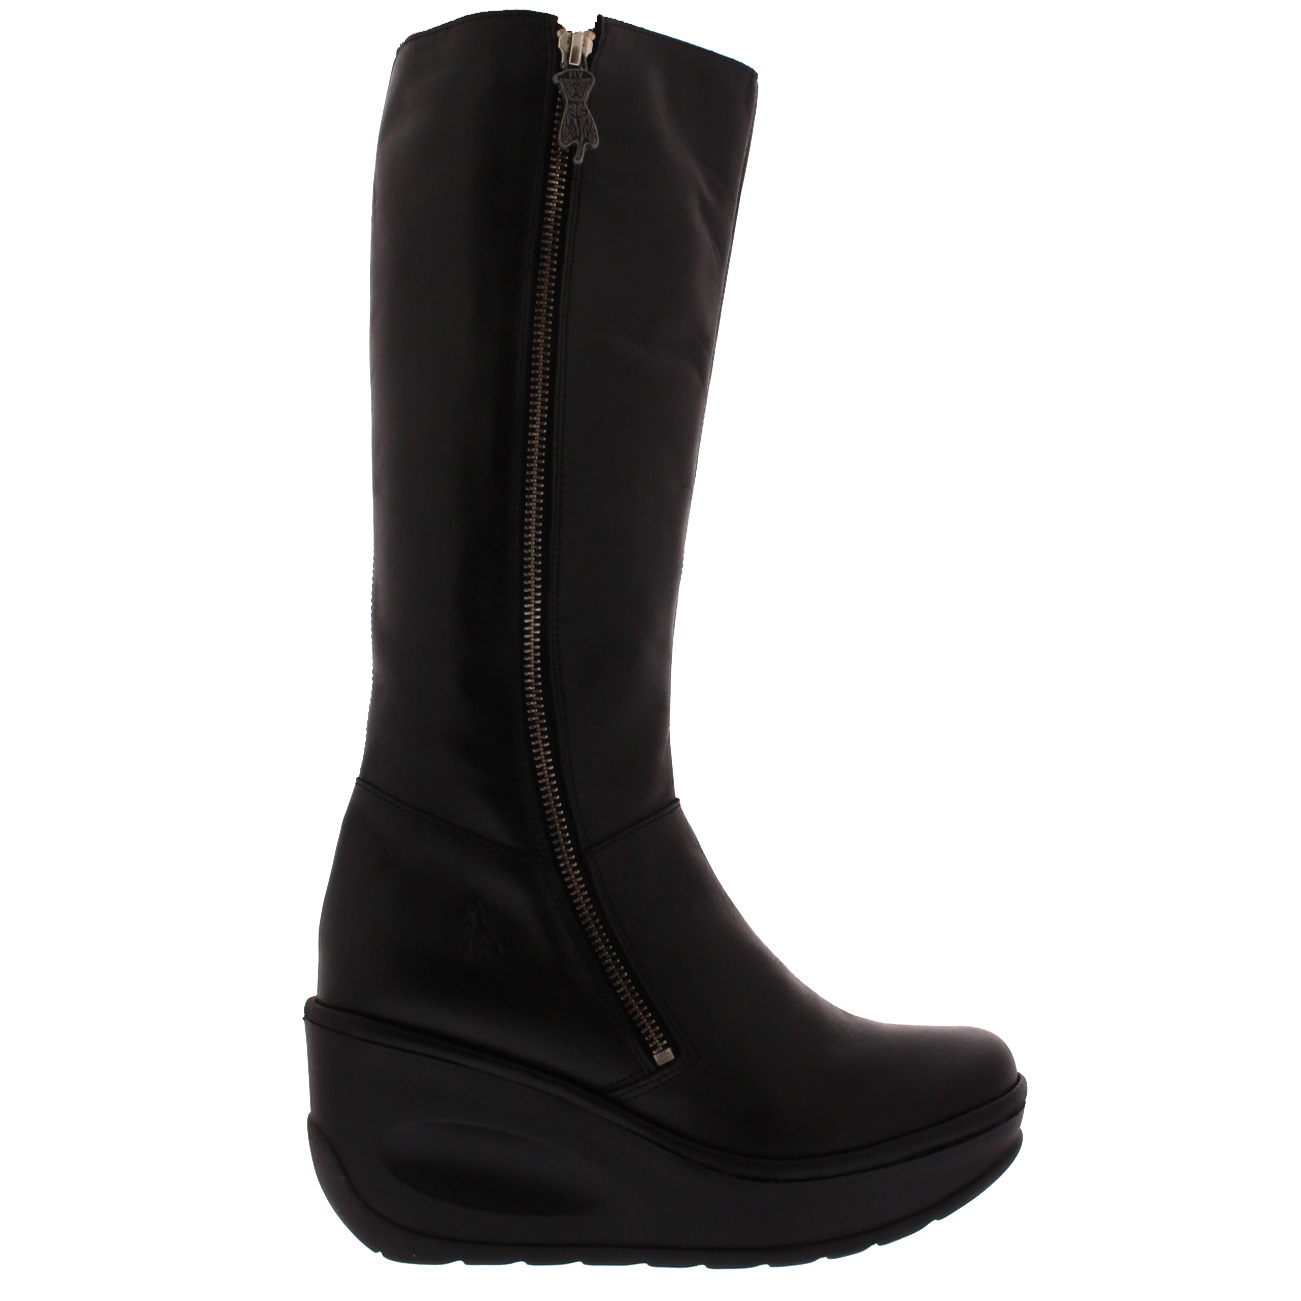 85b01b623a0 Tag Wedge Heel Knee High Boots Uk — waldon.protese-de-silicone.info